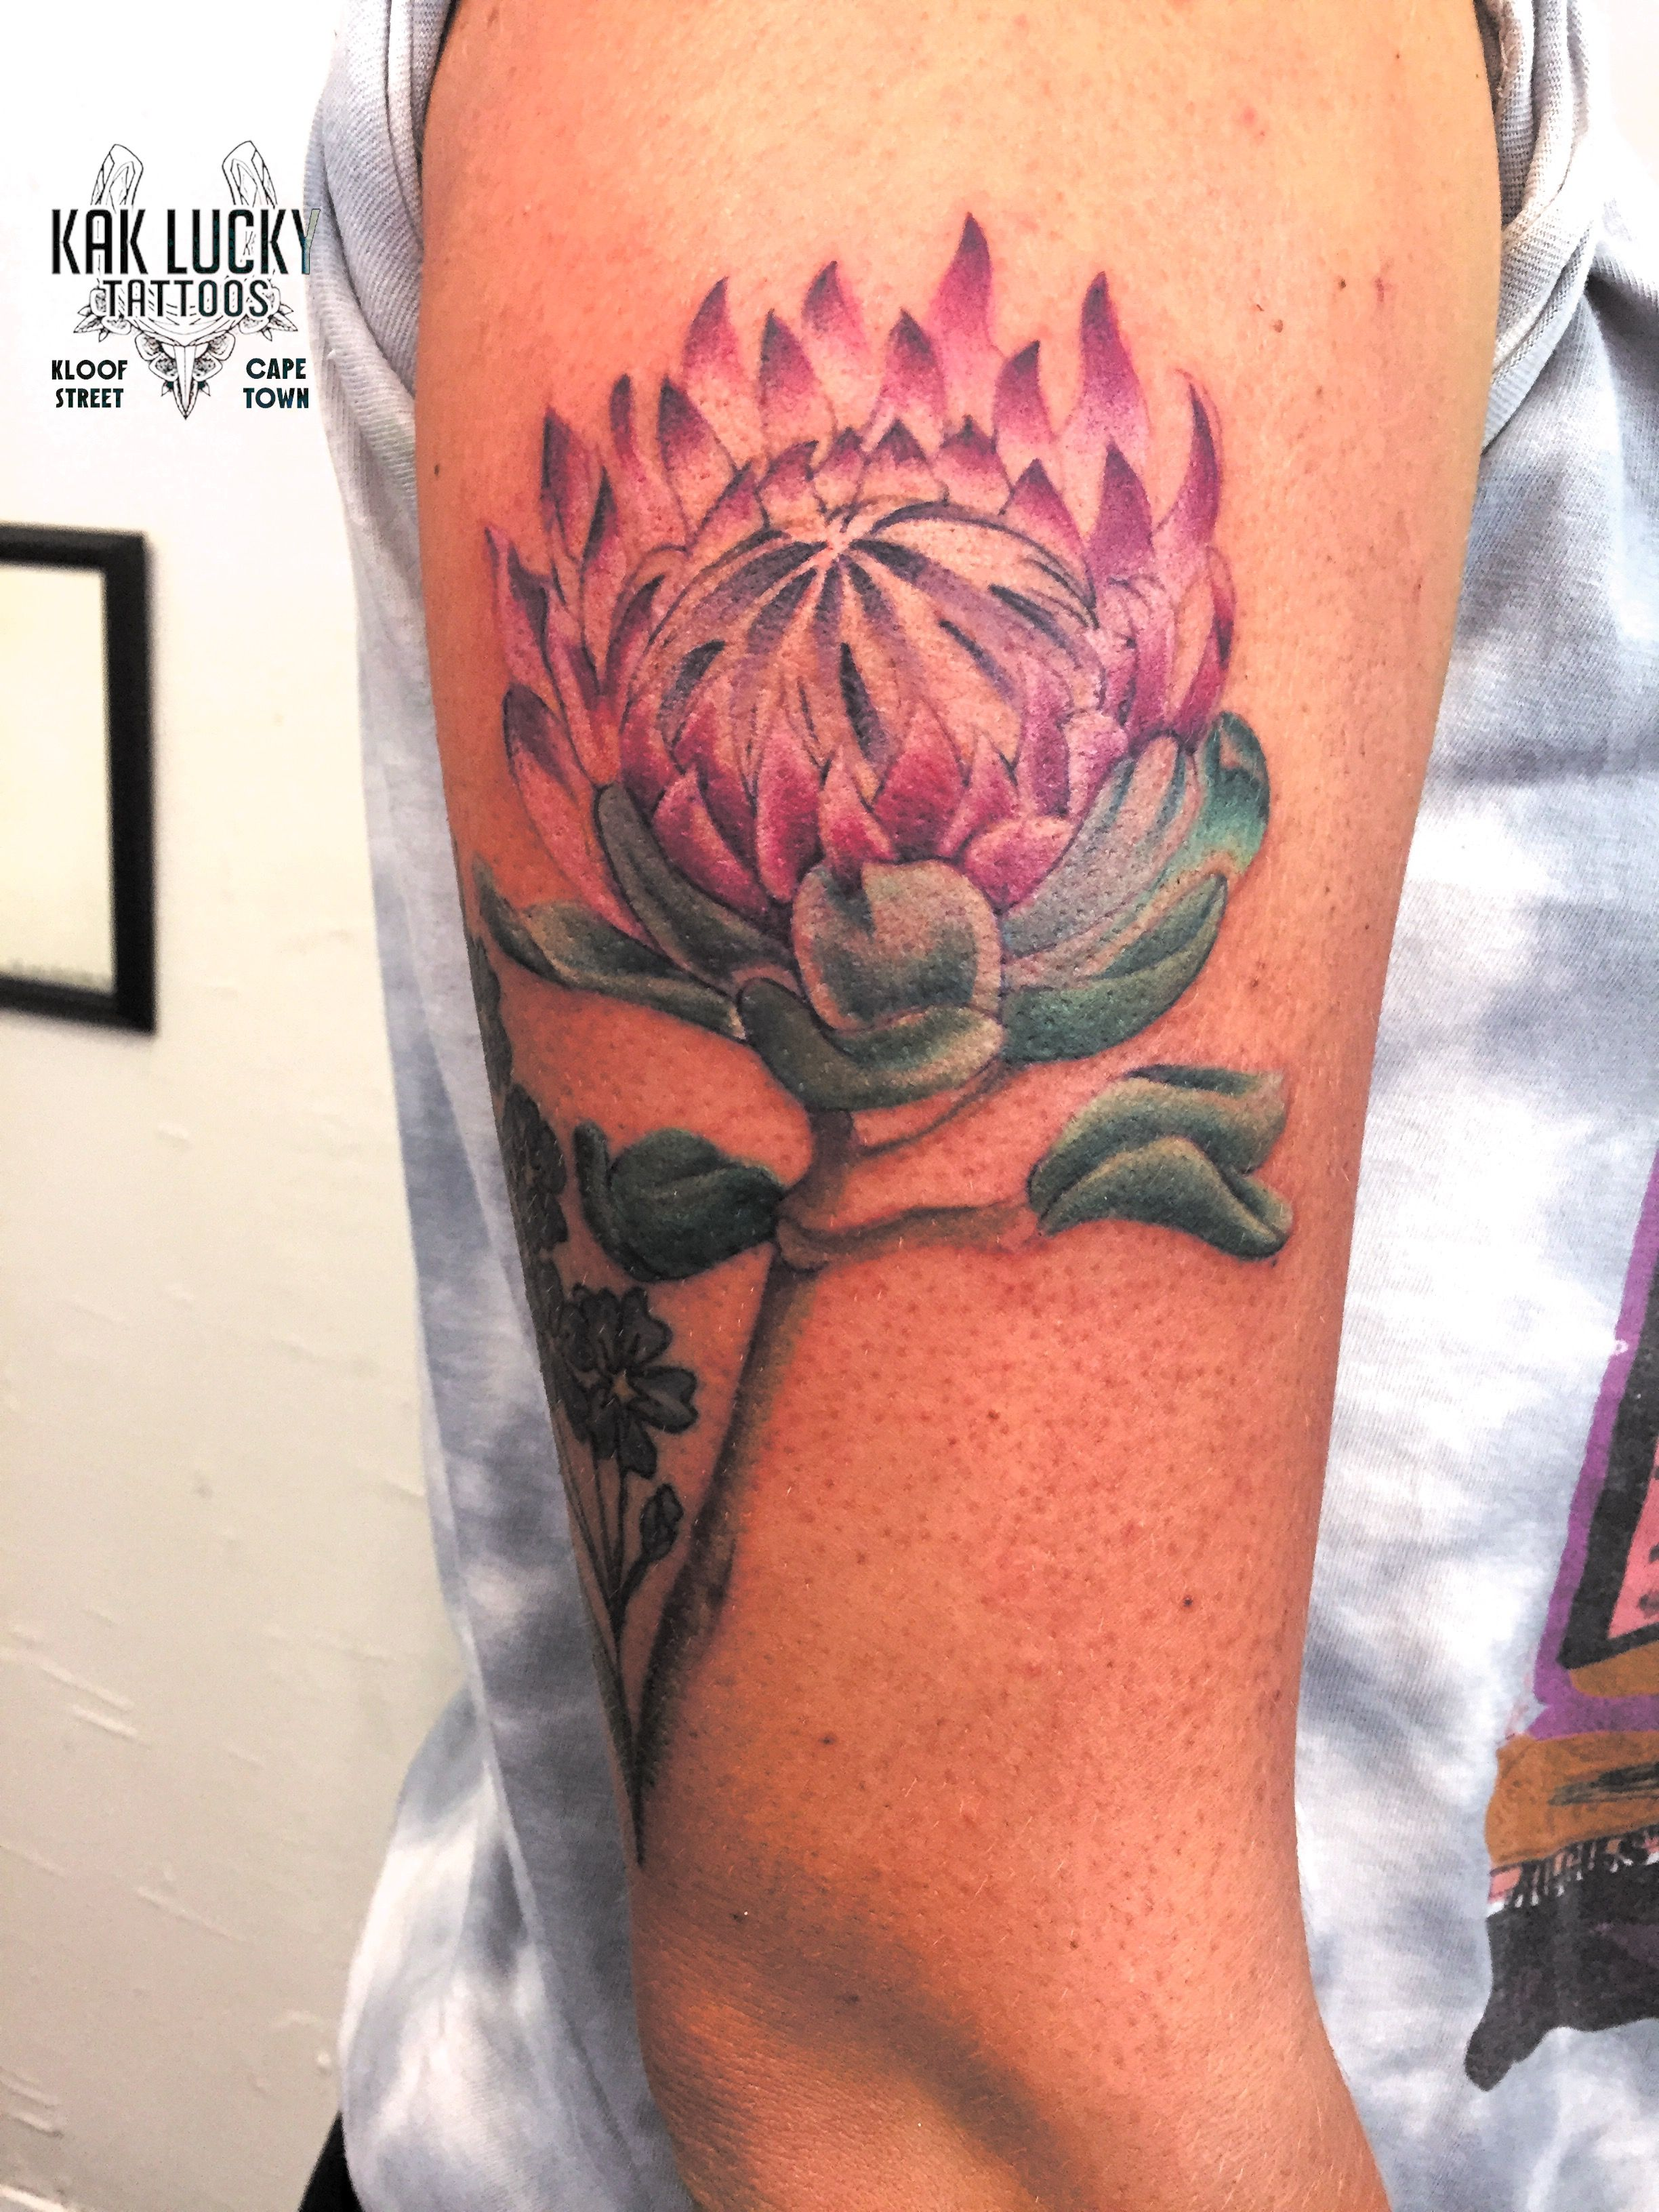 ab8d9270e4fc2 Protea flower by Gareth Doye at Kak Lucky Tattoos. #protea #tattoo #flower  #floral #tattoos #colortattoos #ink